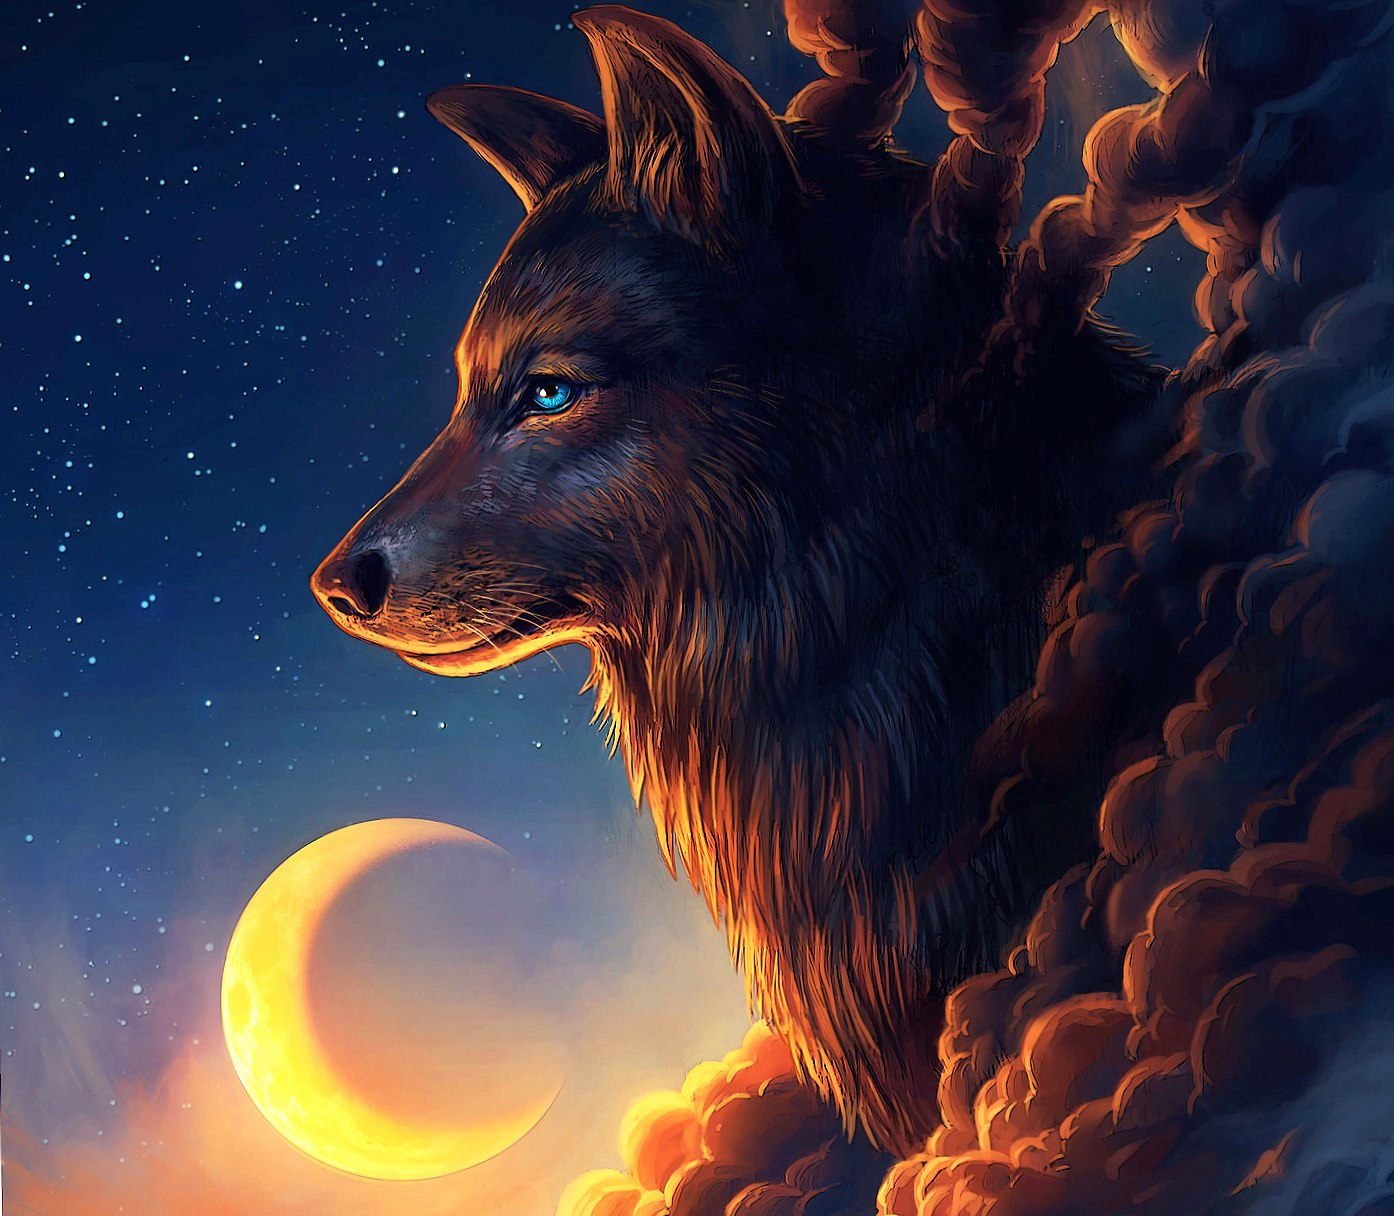 Wolf in Cloud wallpapers HD quality